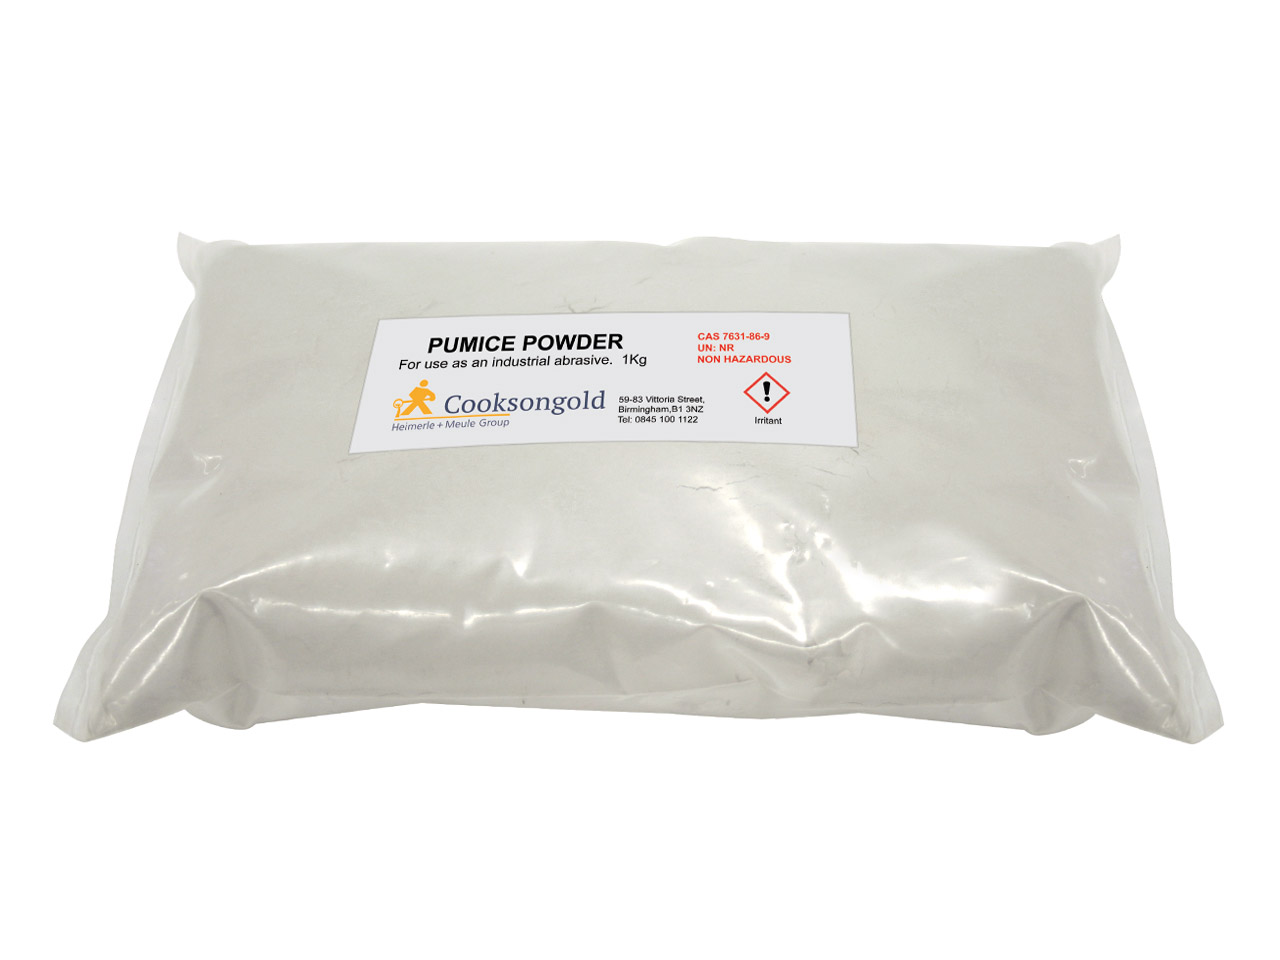 Pumice Powder 1kg Un Unclassified